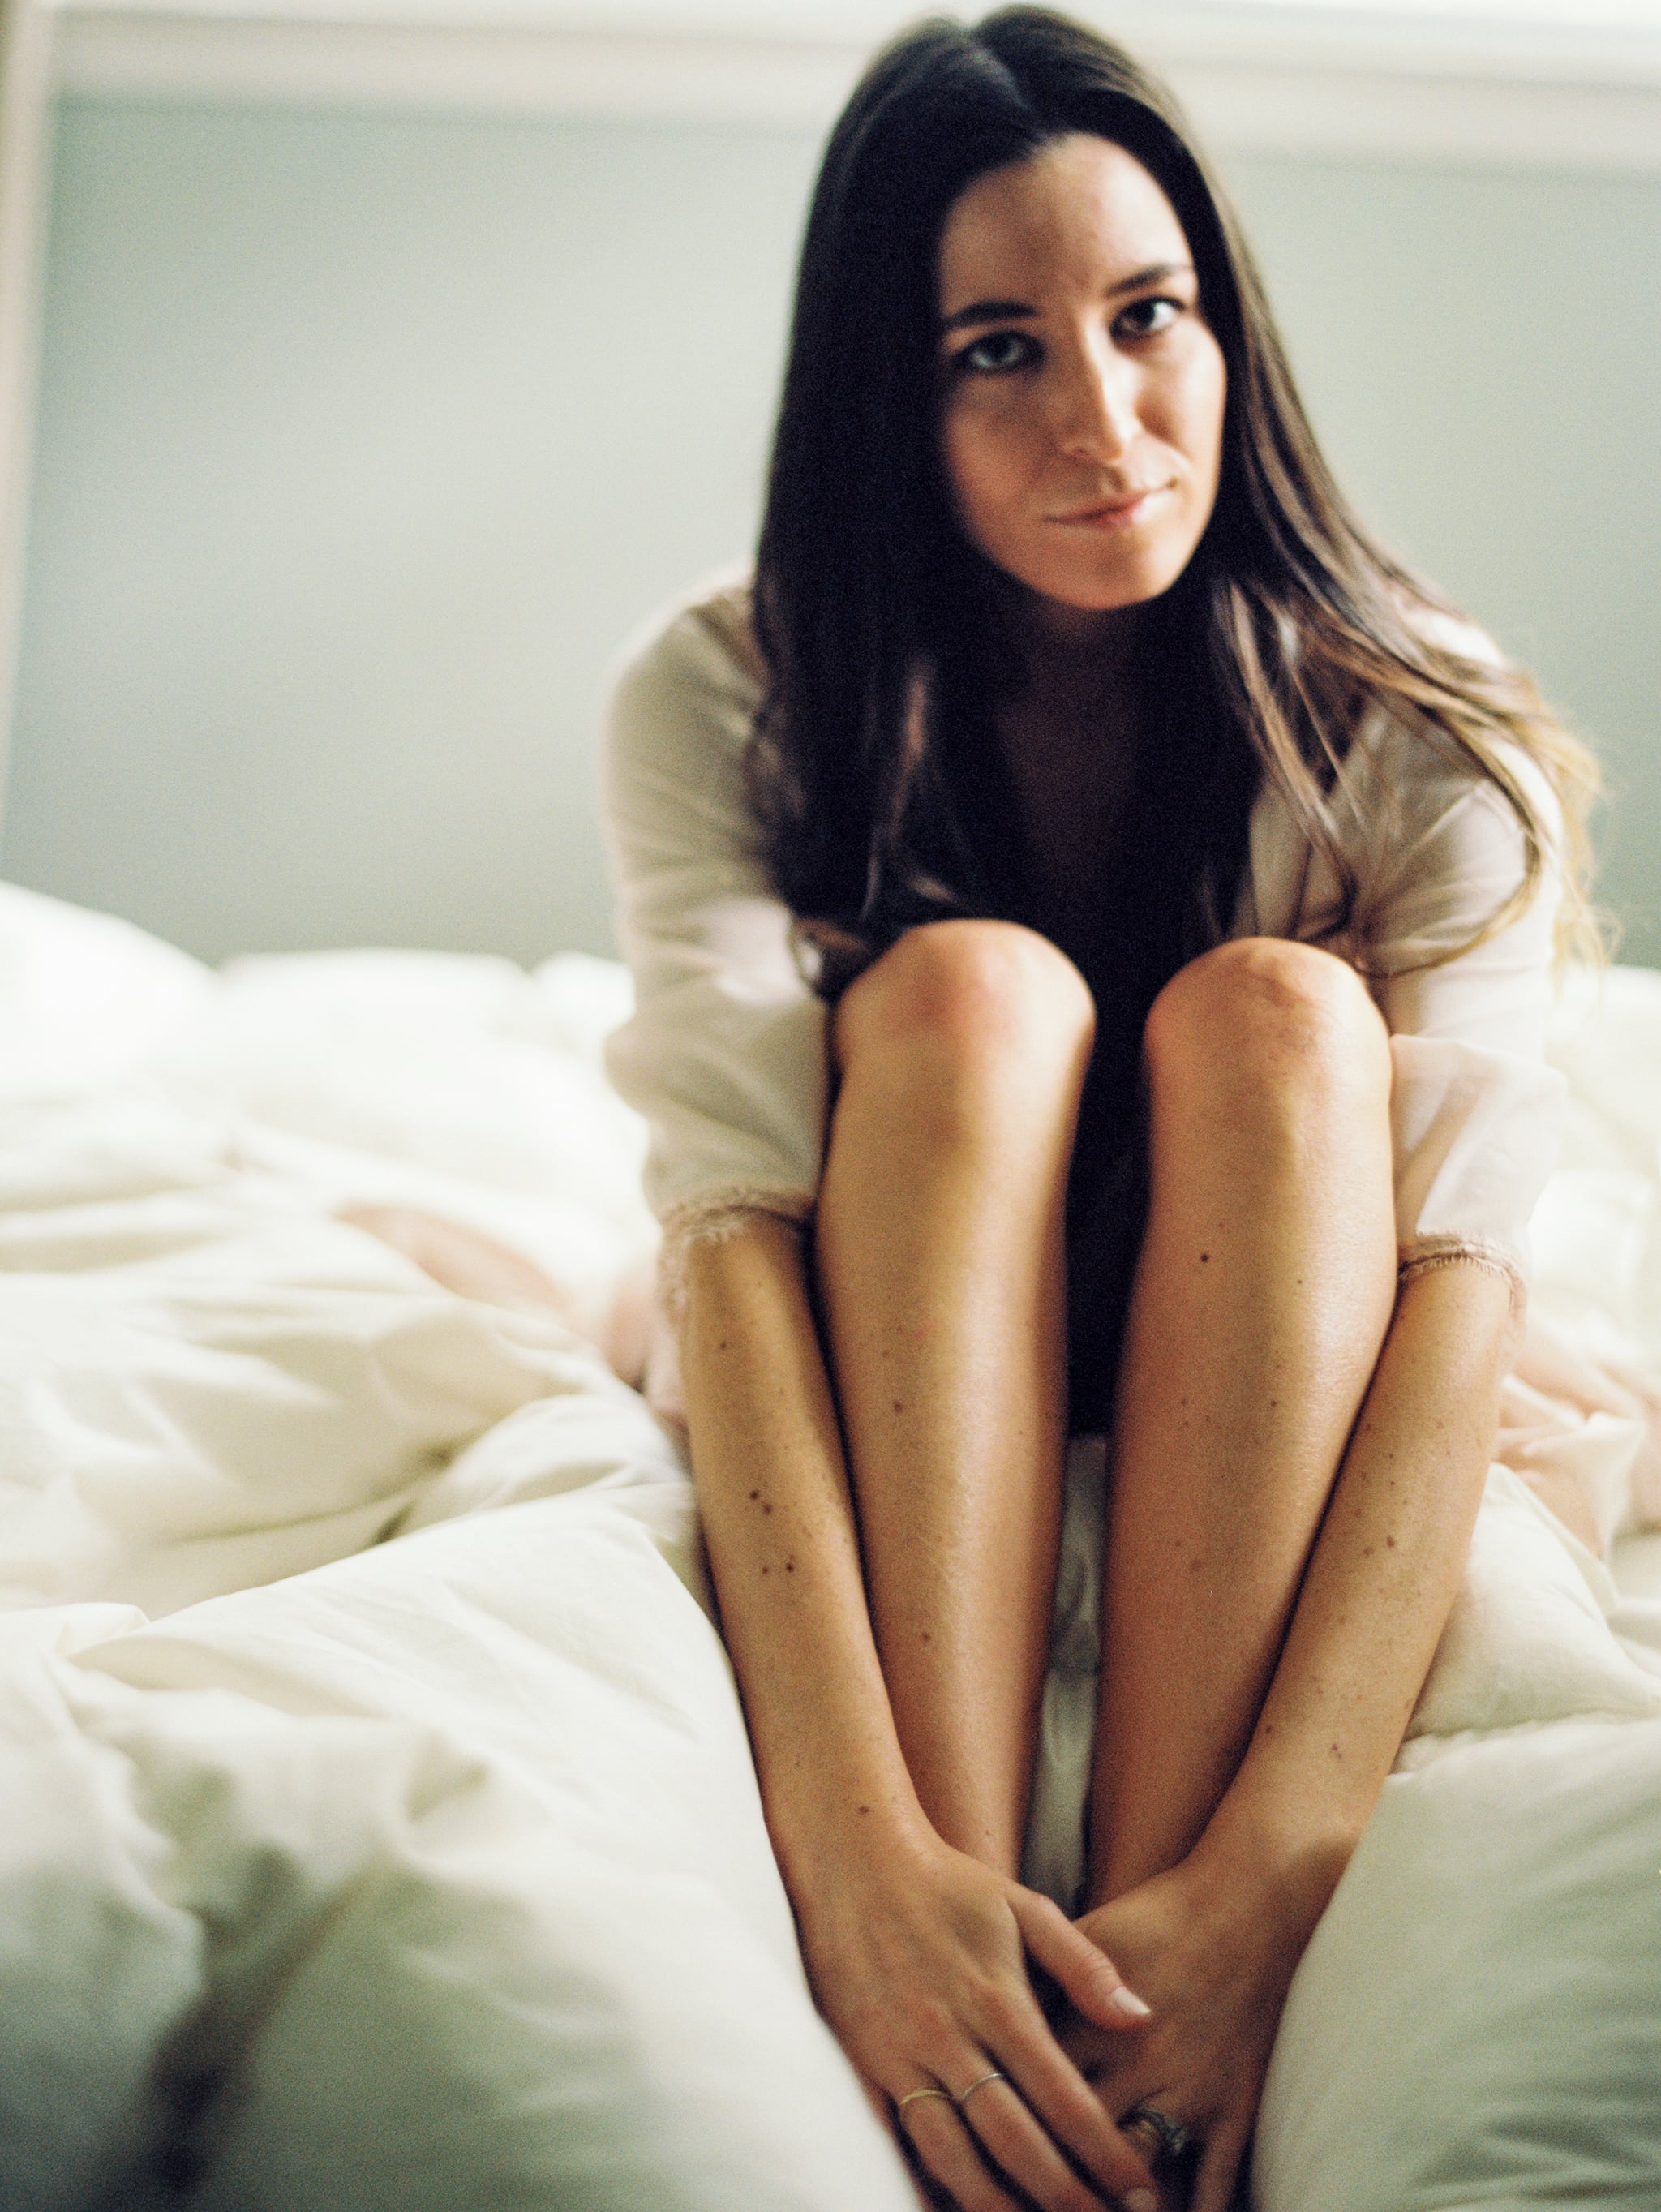 Why Digestion Is Messed Up During Your Period